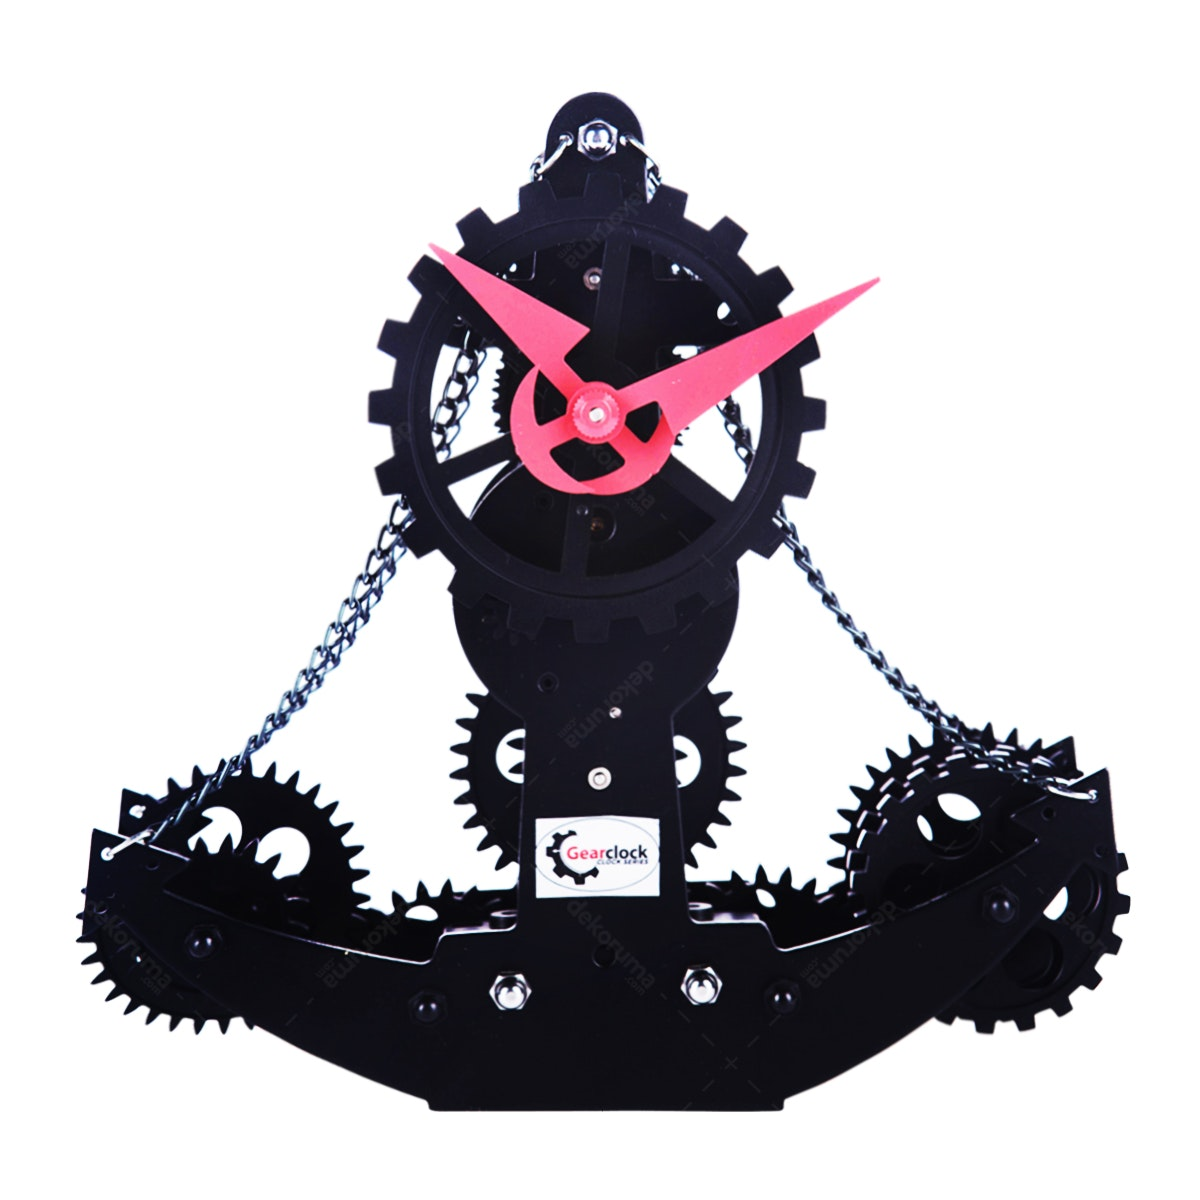 Gearclock Mini Metal Anchor Gear